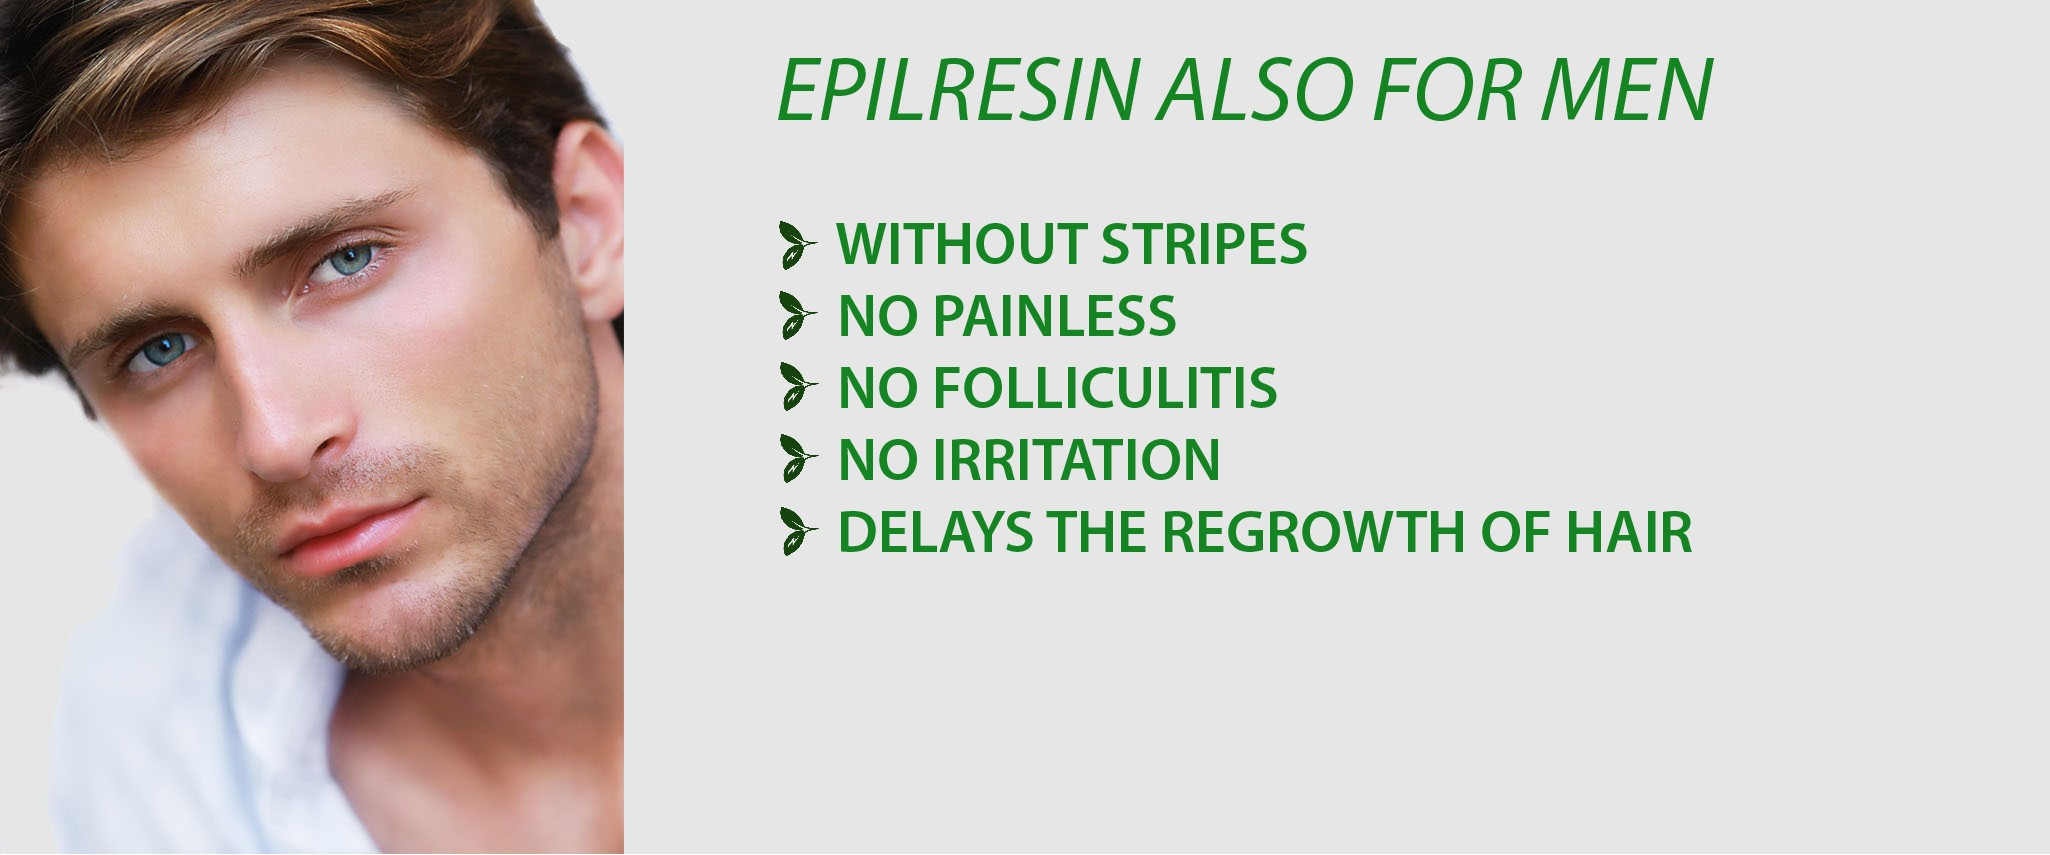 Epilresin also for men